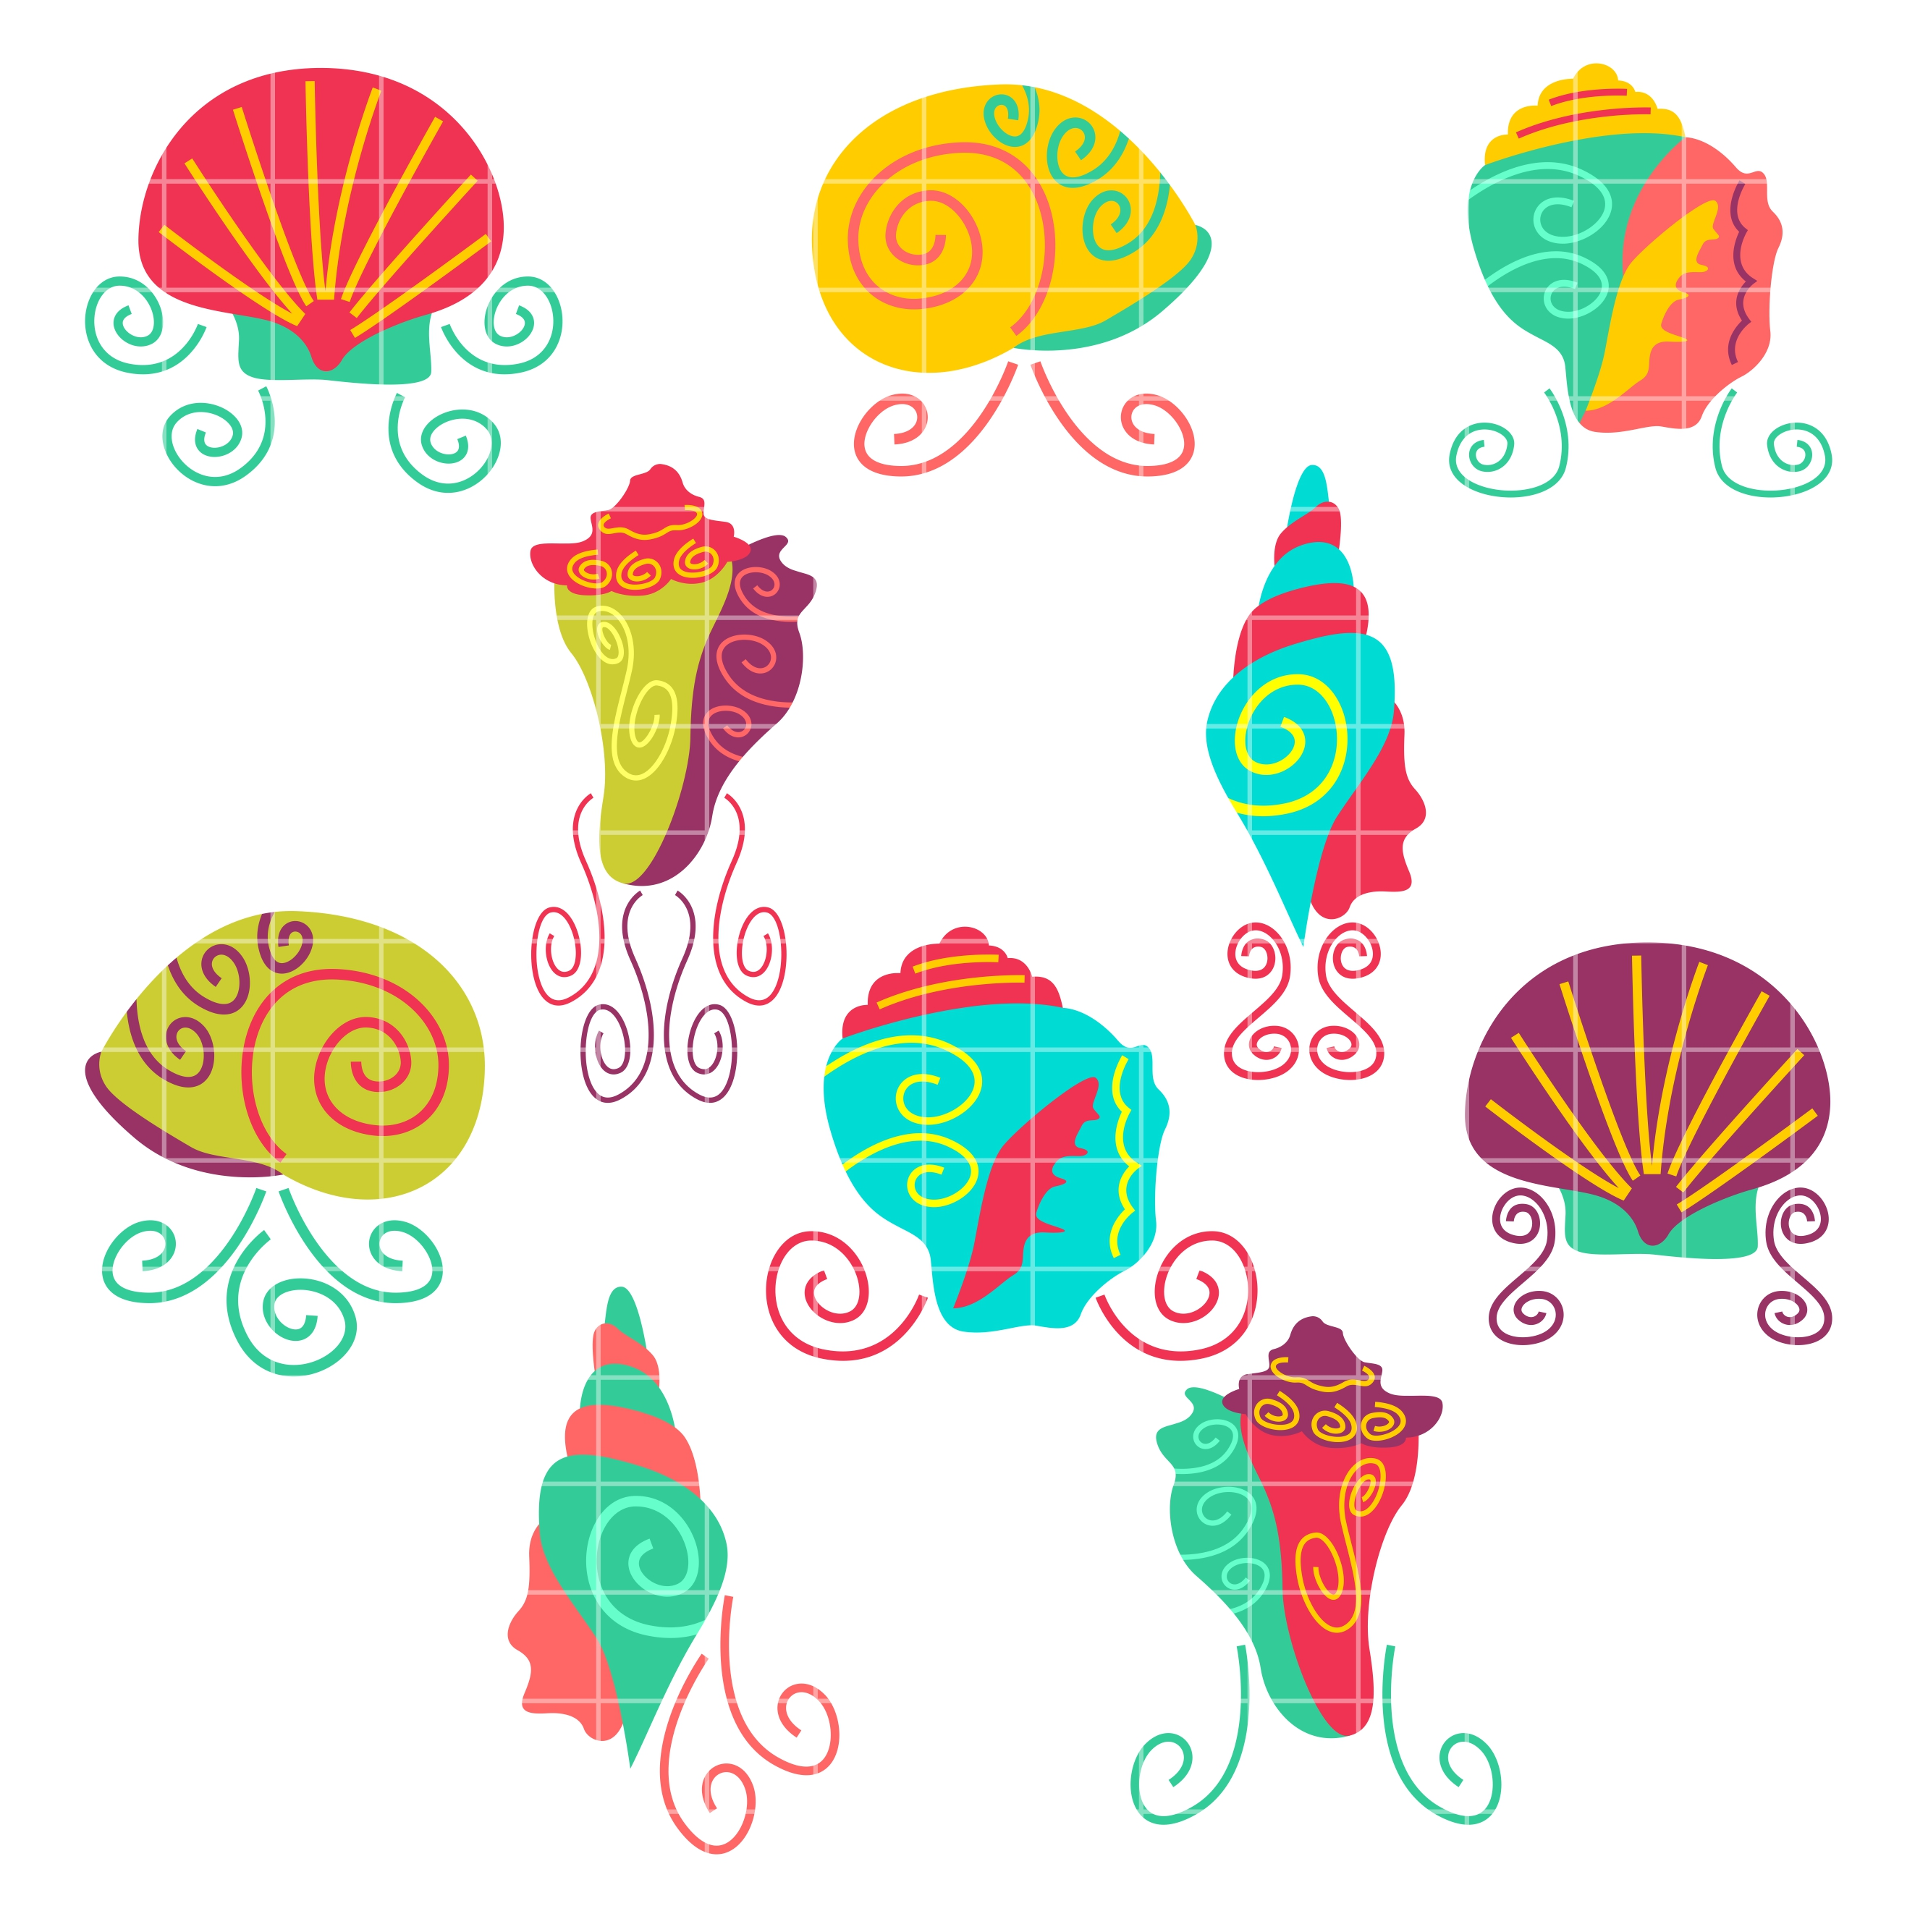 Clip art for embroidery digitizing clipart suggest